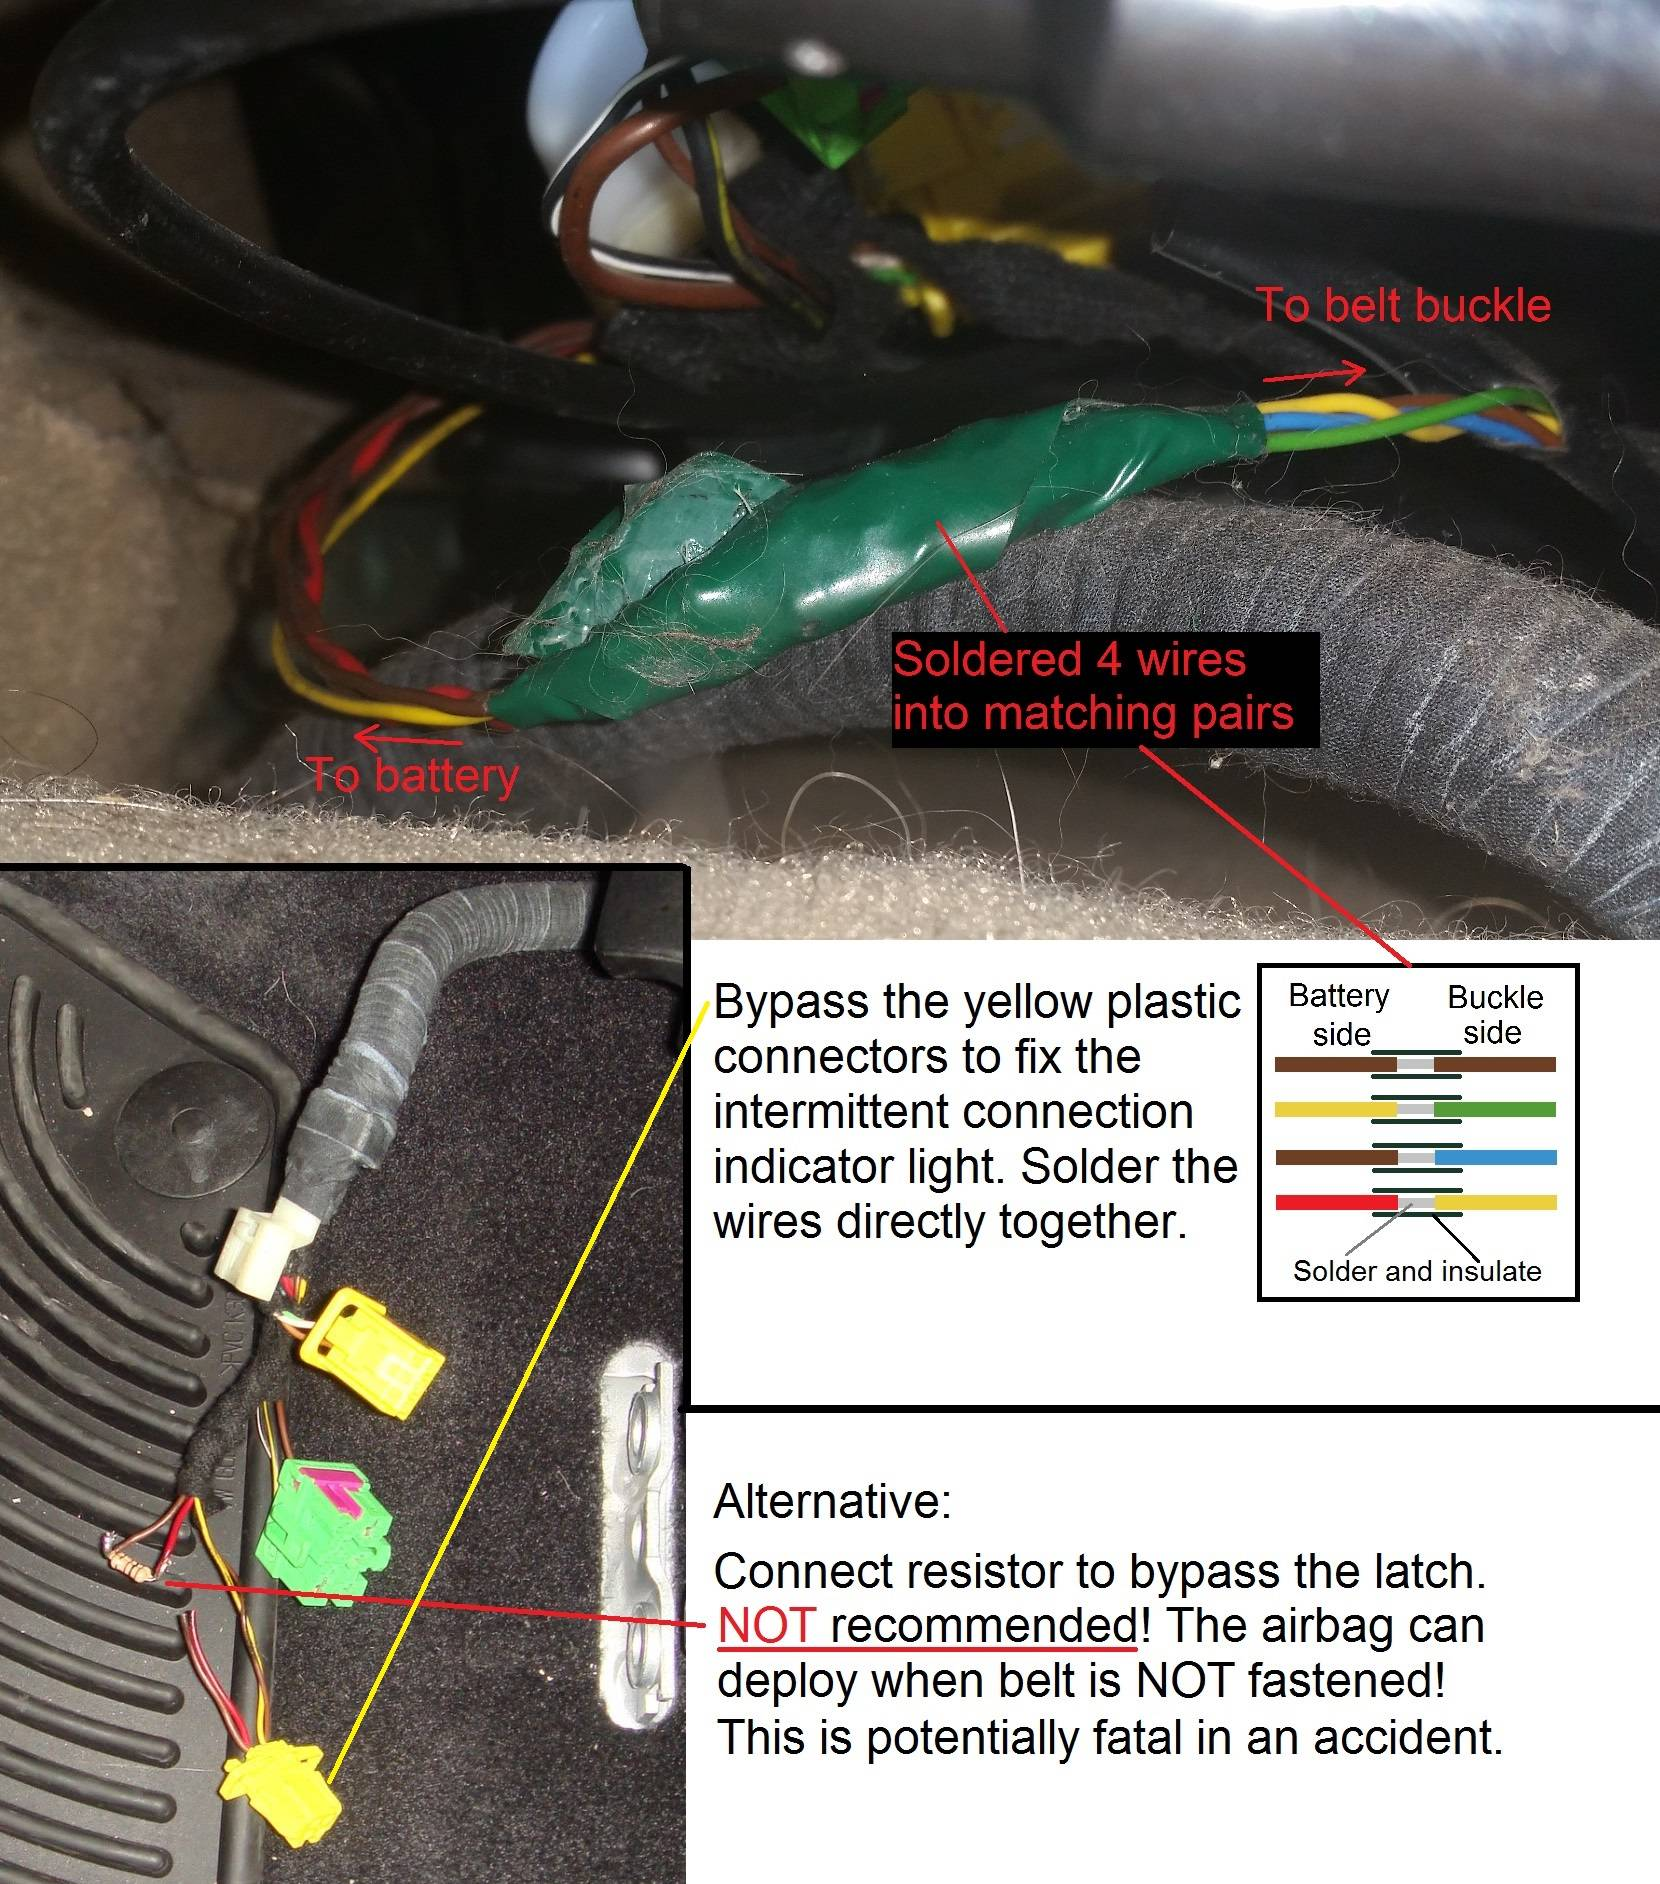 2000 Audi A4 Wiring Diagram Auto Electrical Ug Munity Jimi Hendrix Fuzz Face Gti Airbag Indicator Warning Light